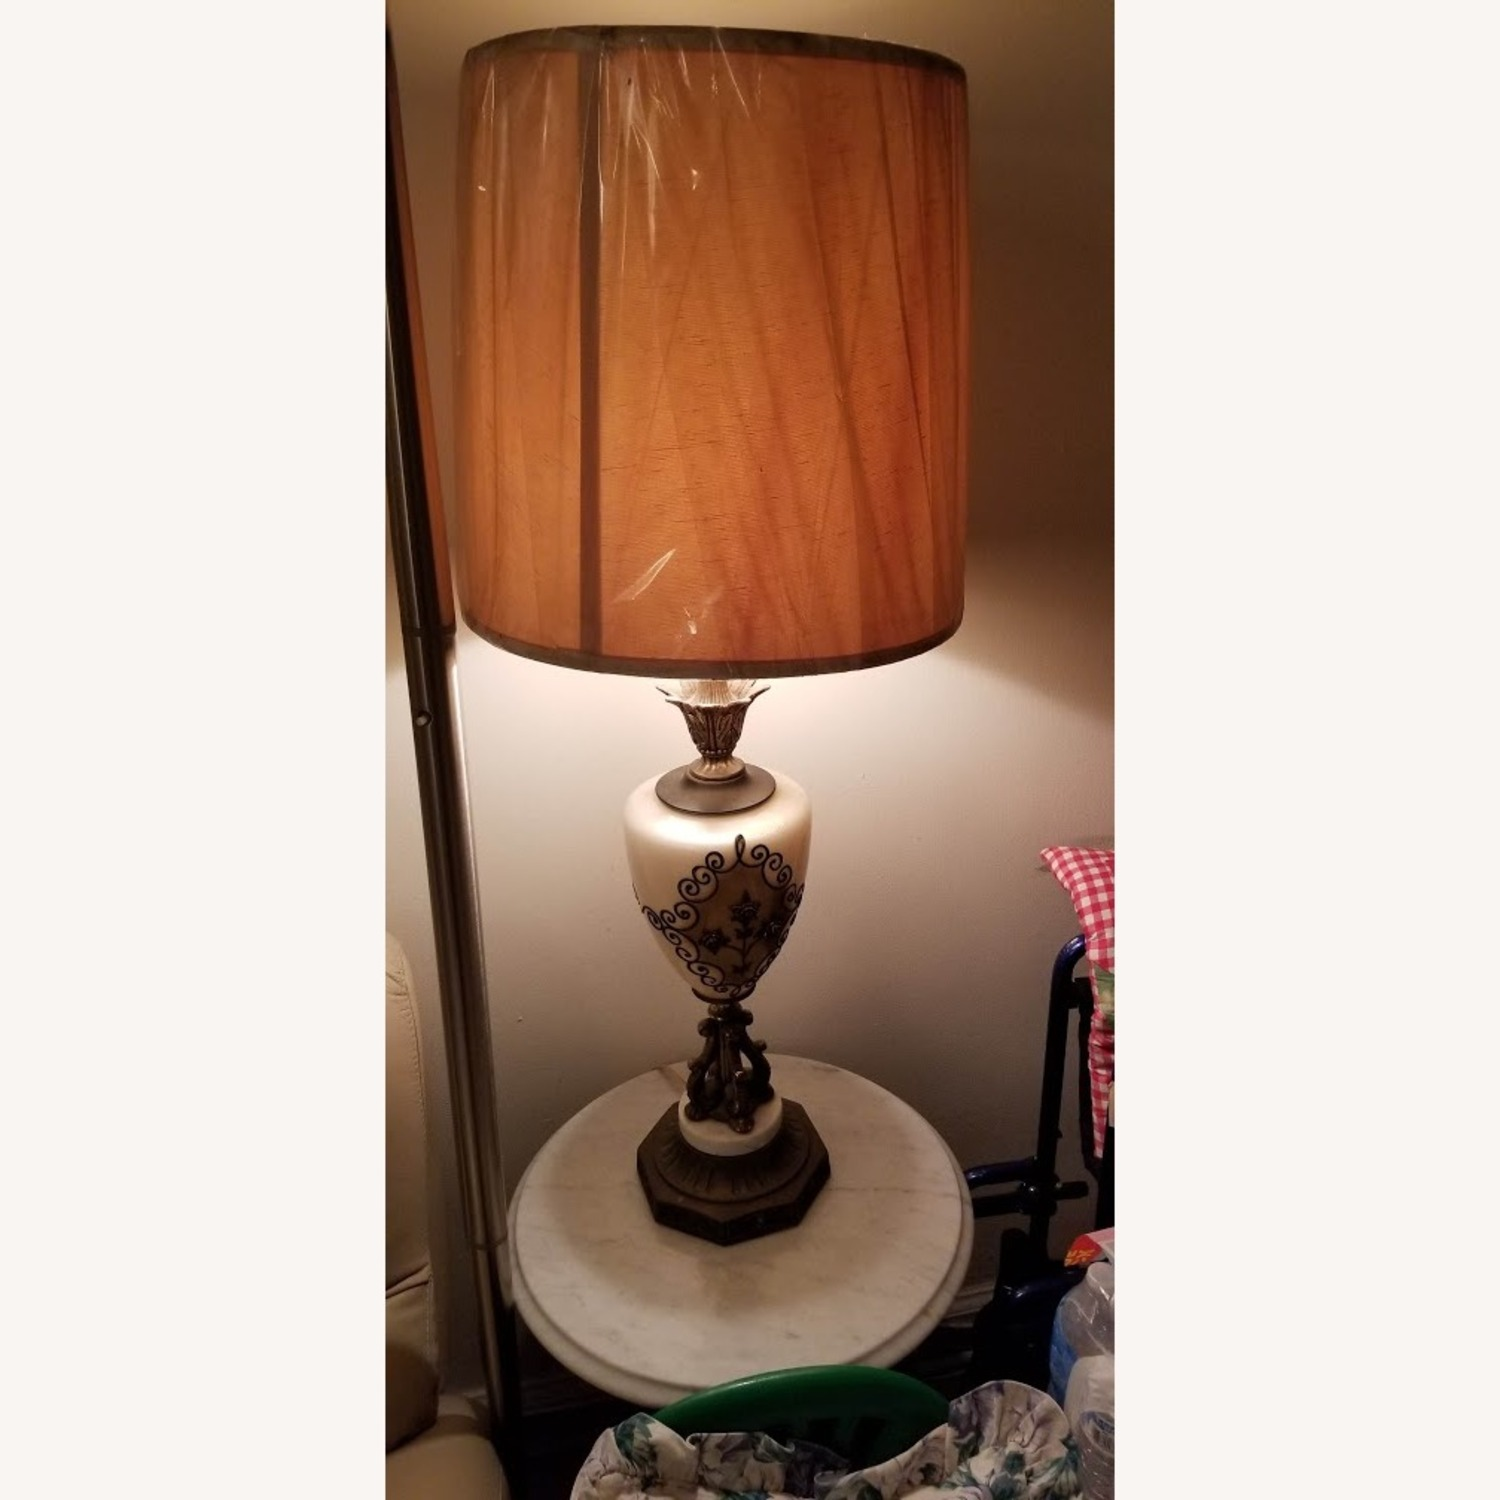 Vintage Living Room table and lamp set